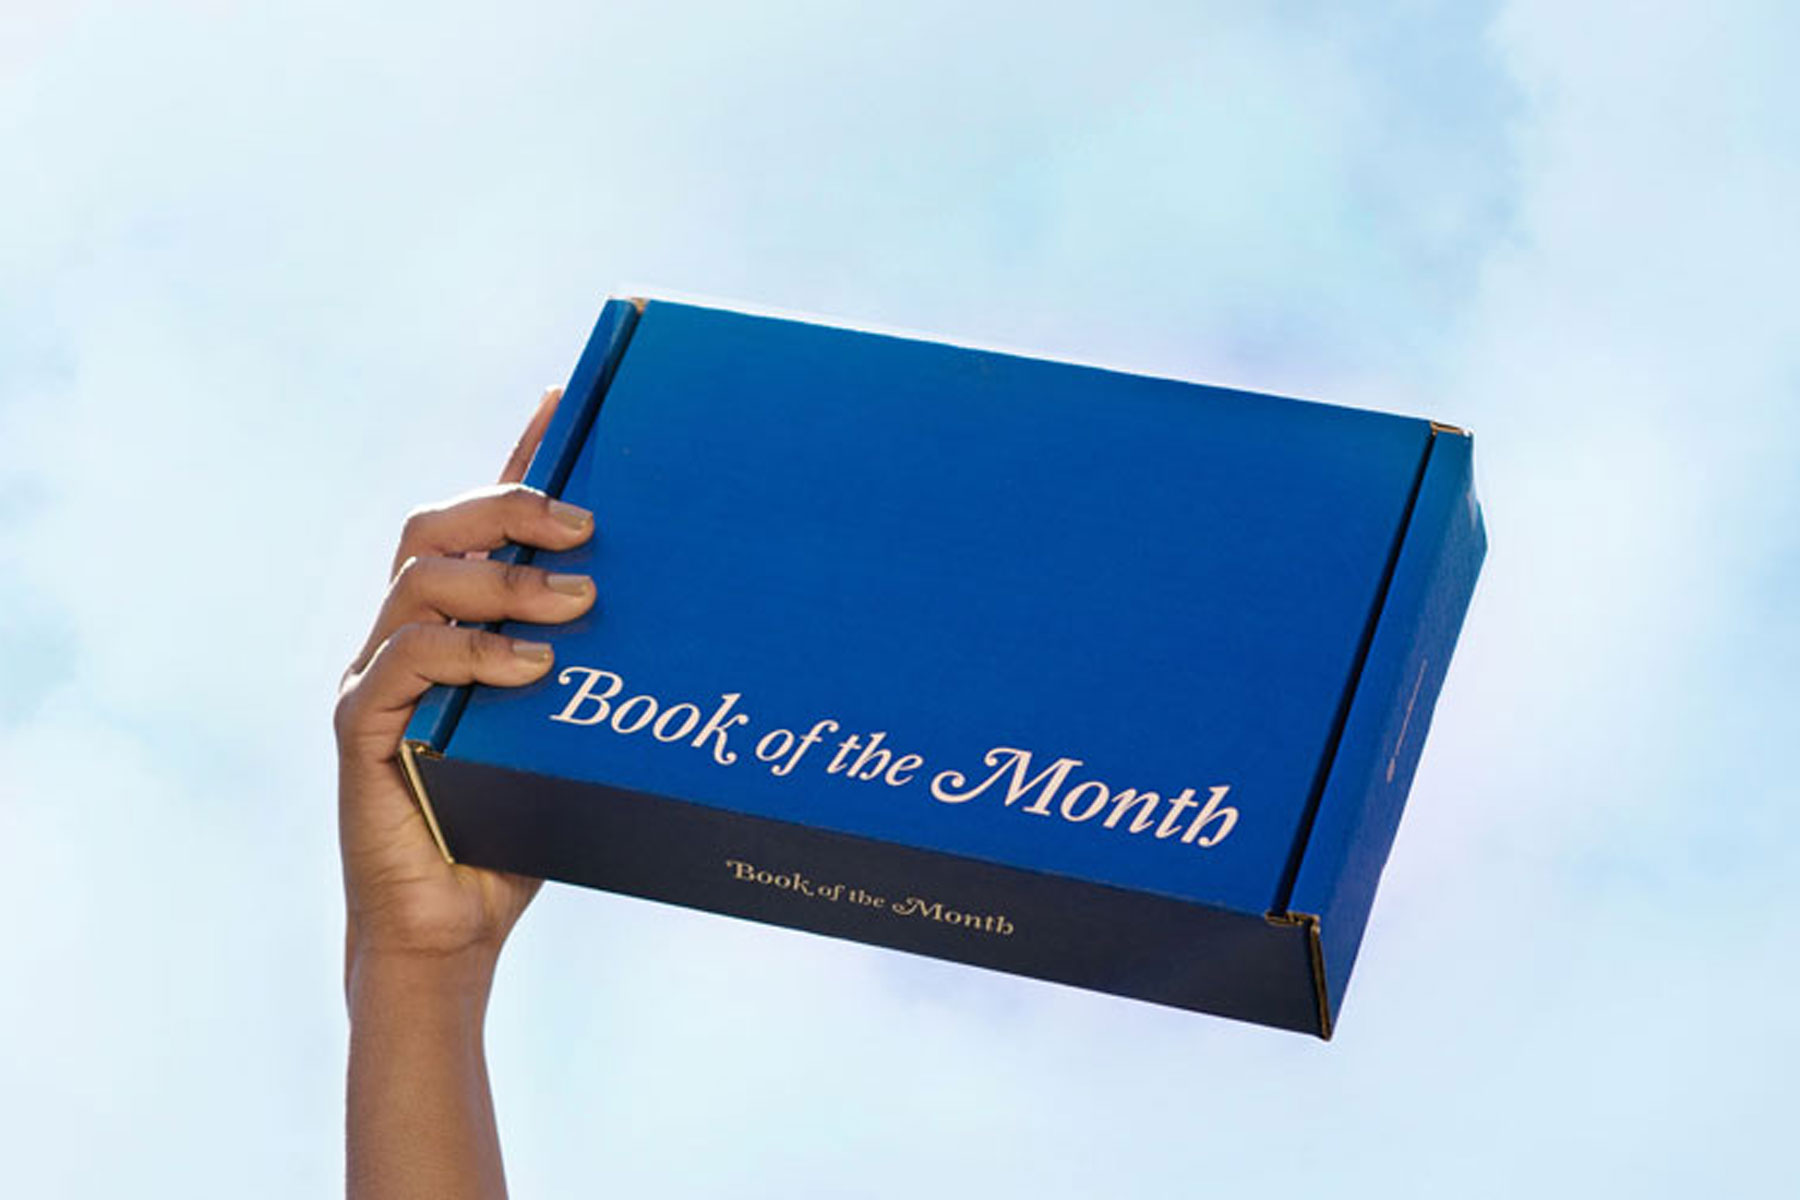 Now that your graduate probably has more time to read for pleasure, they'll love this monthly subscription that introduces them to new books.To buy: bookofthemonth.com, $50 for three months